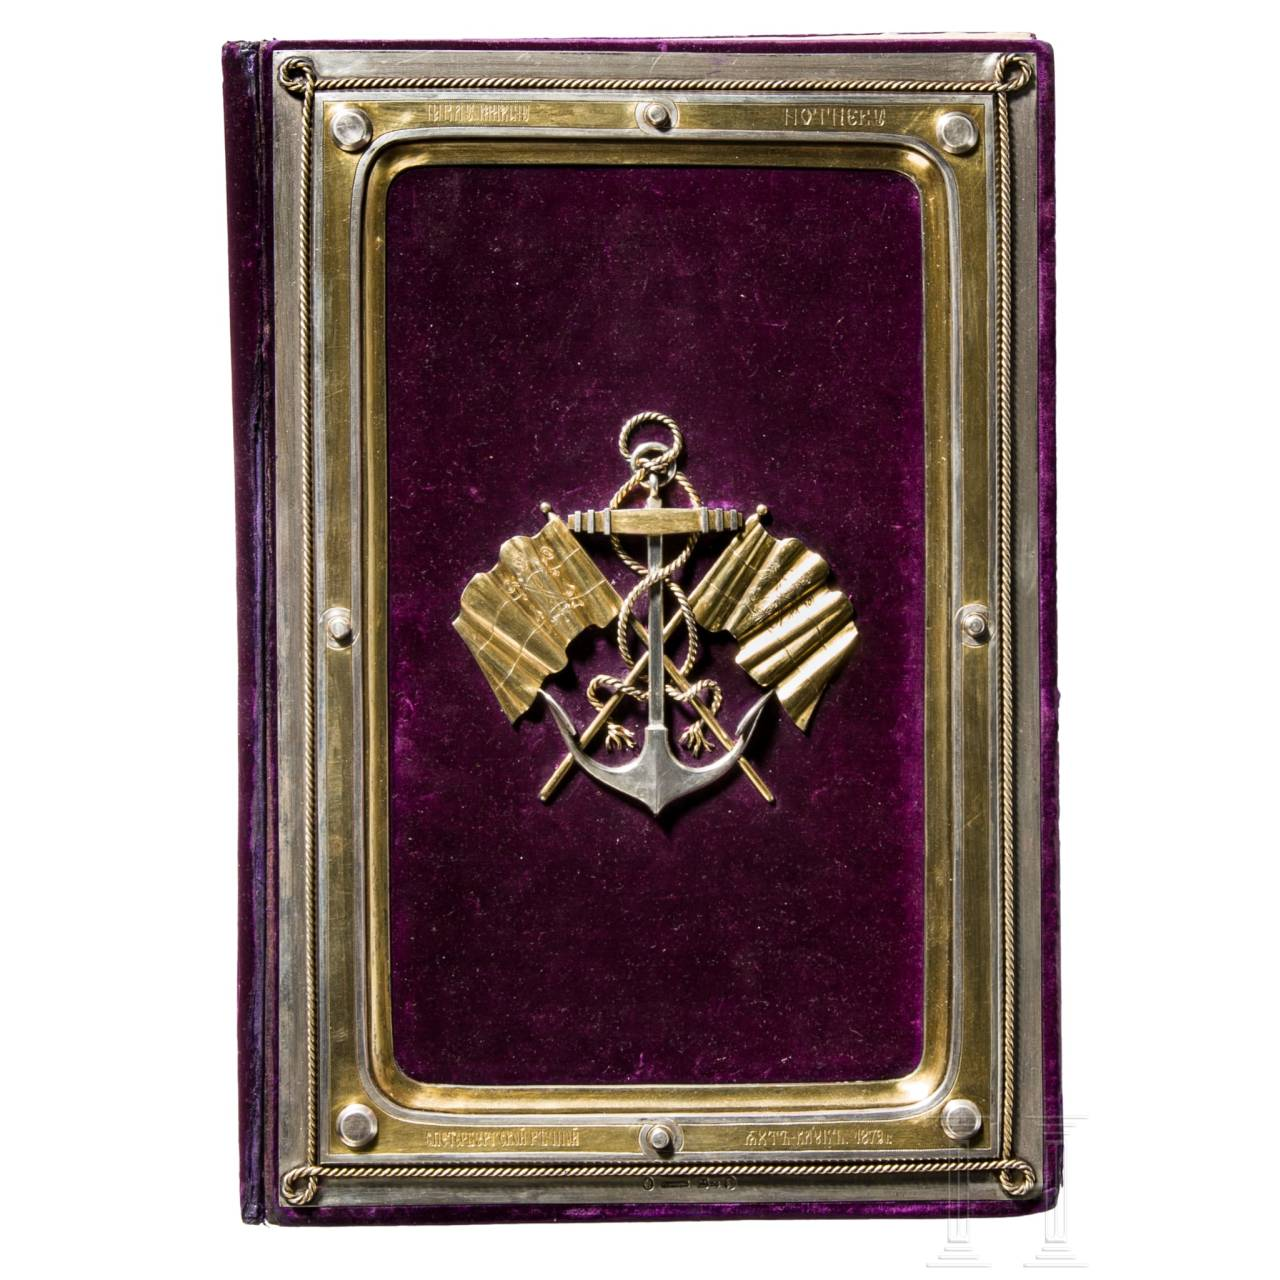 A splendid silver-mounted writing case of the St. Petersburg Yacht Club, awarded to the renowned architect Pavel Karlovitch Notbek (1824 – 1877), St. Petersburg, Russia, dated 1870/1872